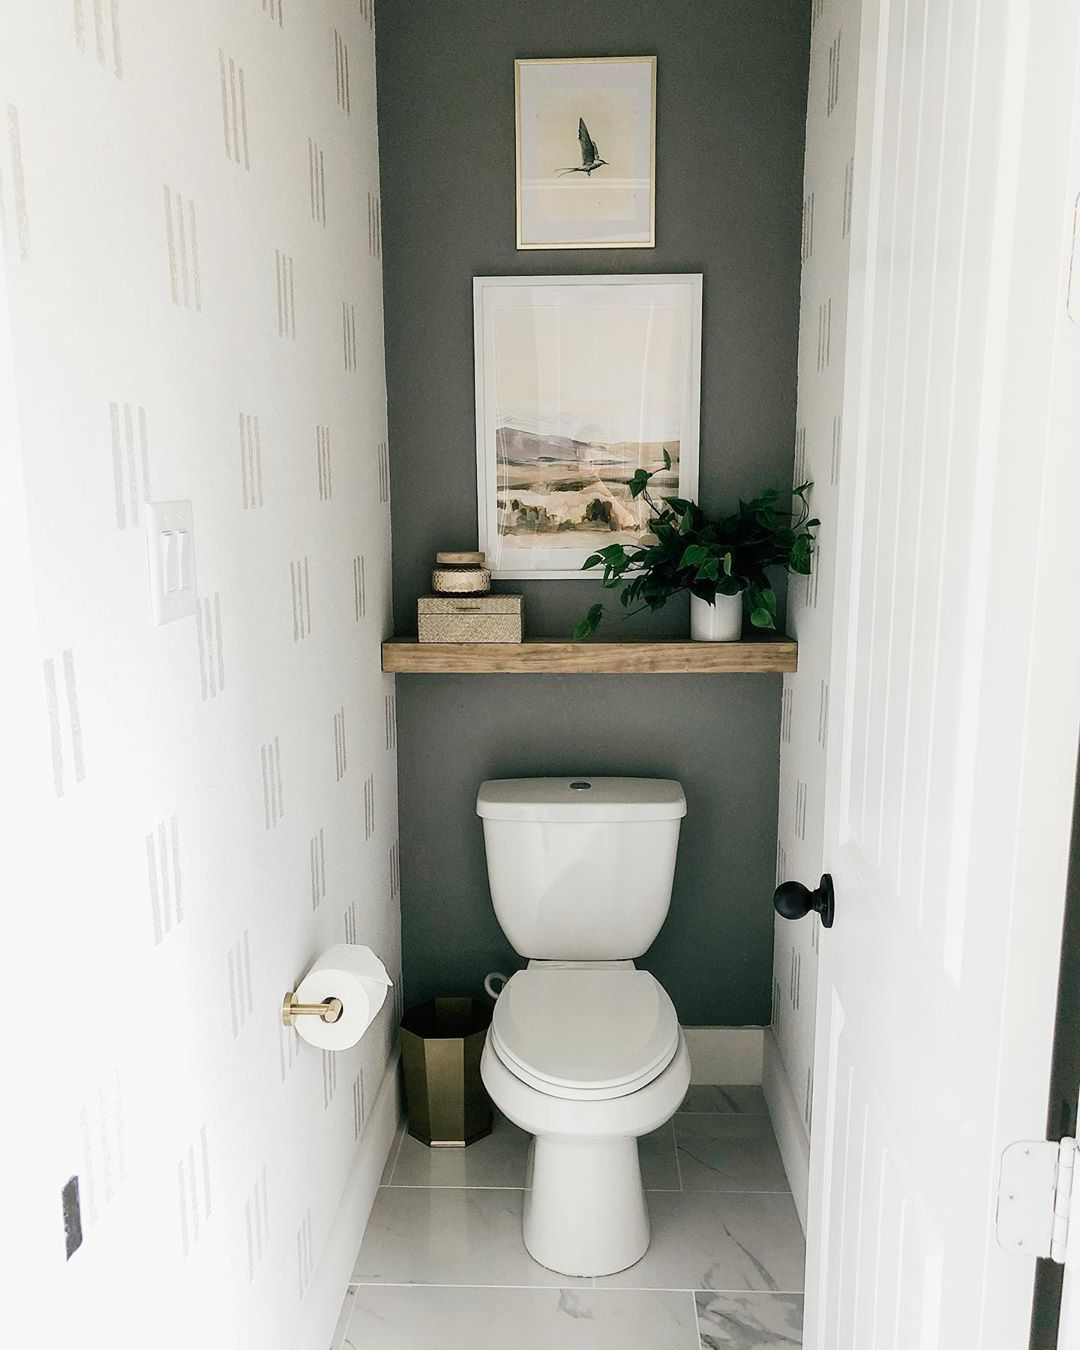 Regan On Instagram This Was So Much Fun I Love Decorating Tiny Spaces Using Things I Al In 2020 Toilet Room Decor Bathroom Design Inspiration Closet Makeover